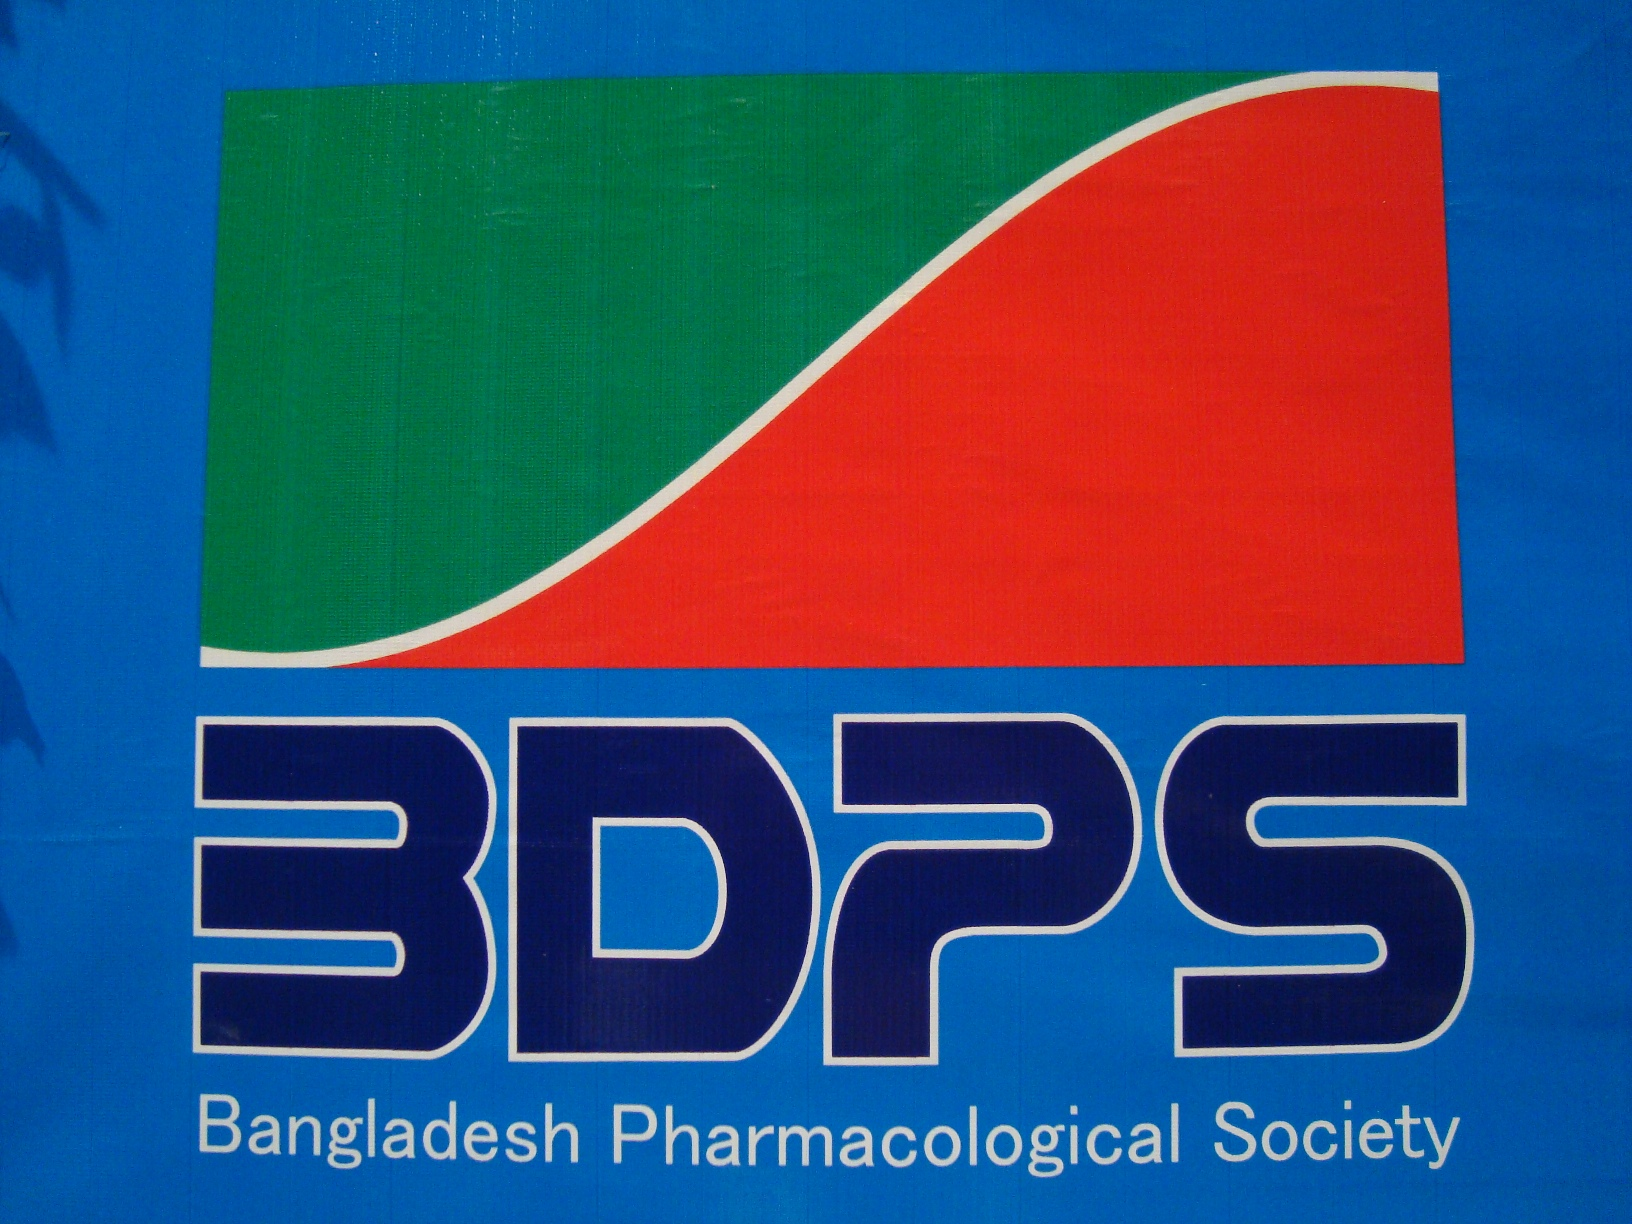 Official Logo of Bangladesh Pharmacological Society (BDPS)